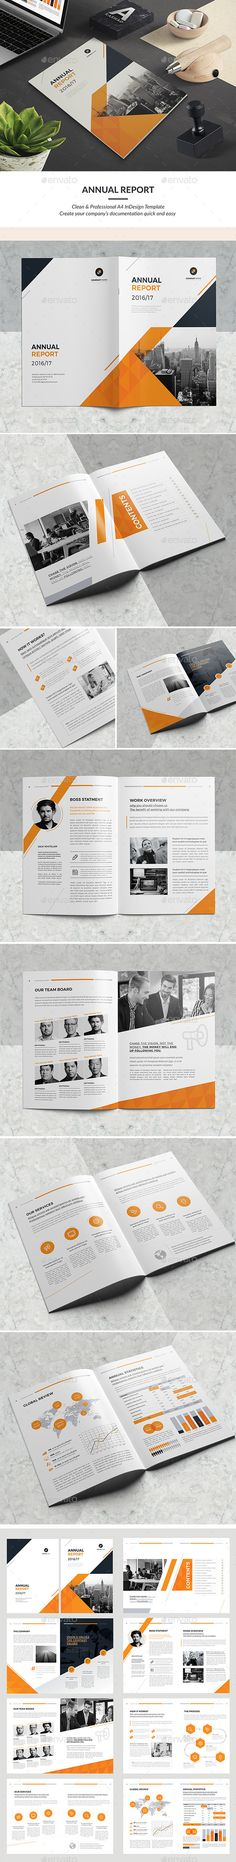 Clean Annual Report — InDesign INDD #informational #creative • Download ➝ https://graphicriver.net/item/clean-annual-report/19184304?ref=pxcr